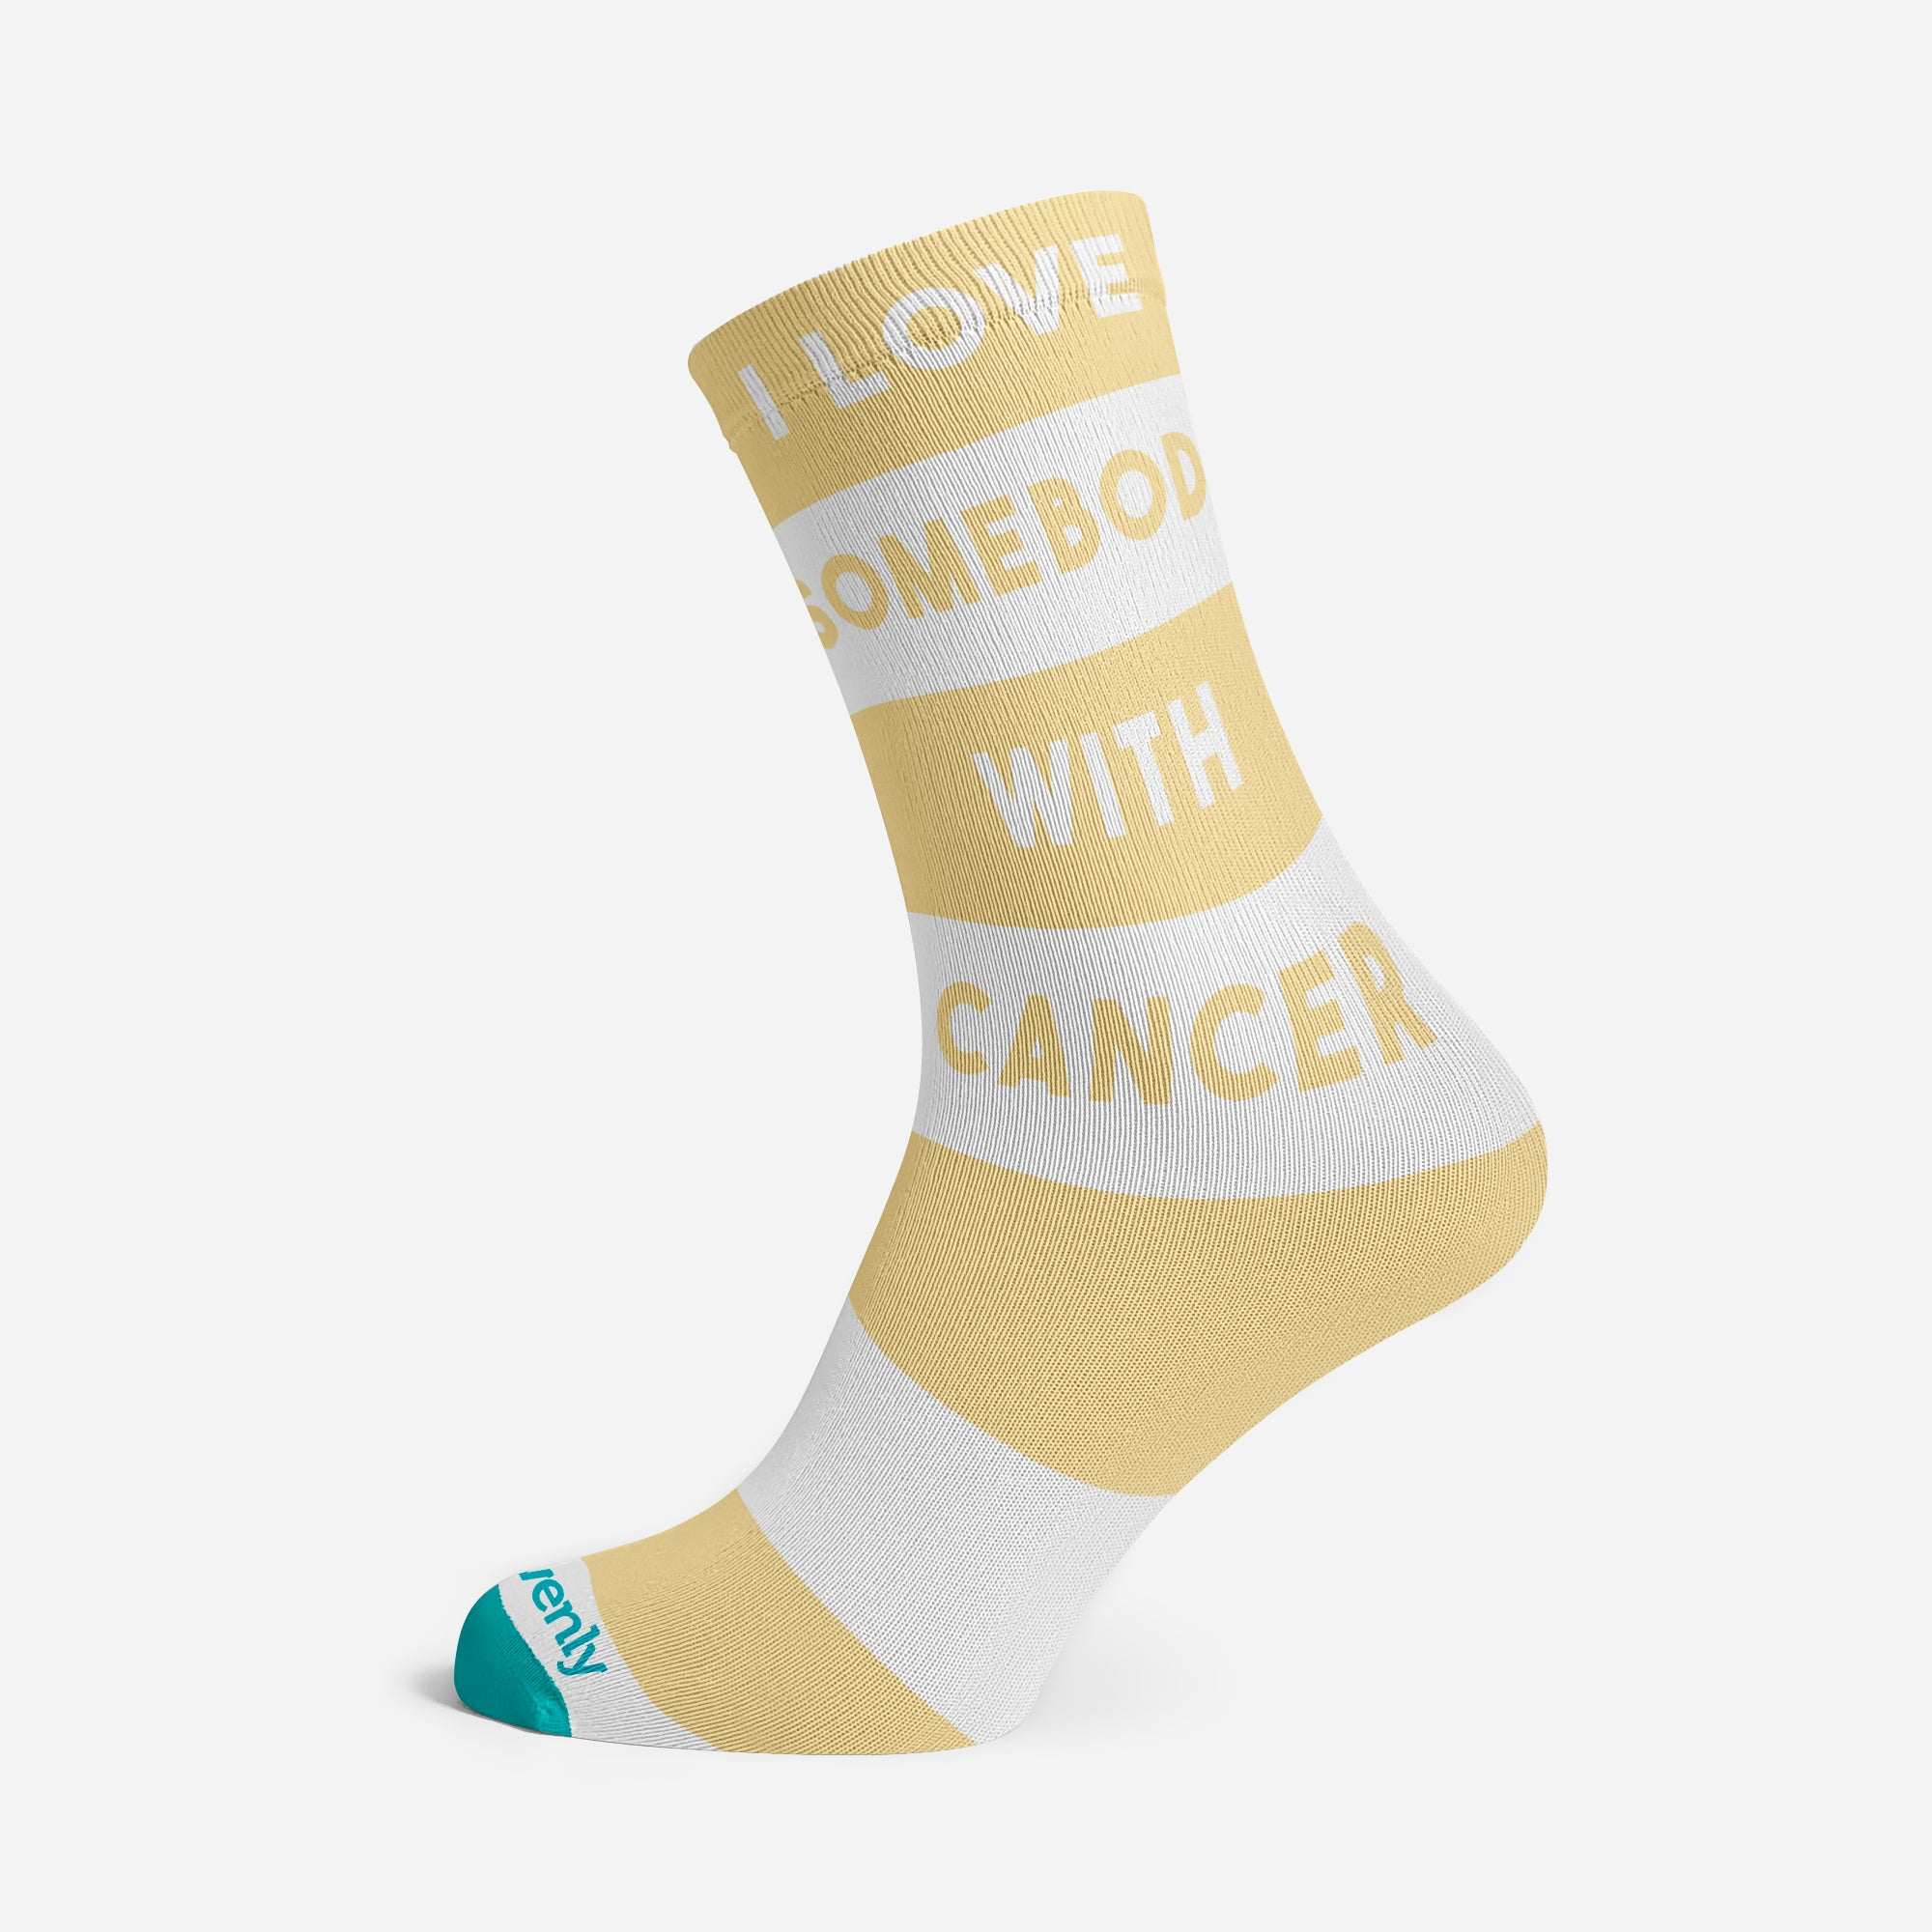 I LOVE SOMEONE WITH CANCER PREMIUM SOCKS FOR THE FAMILY